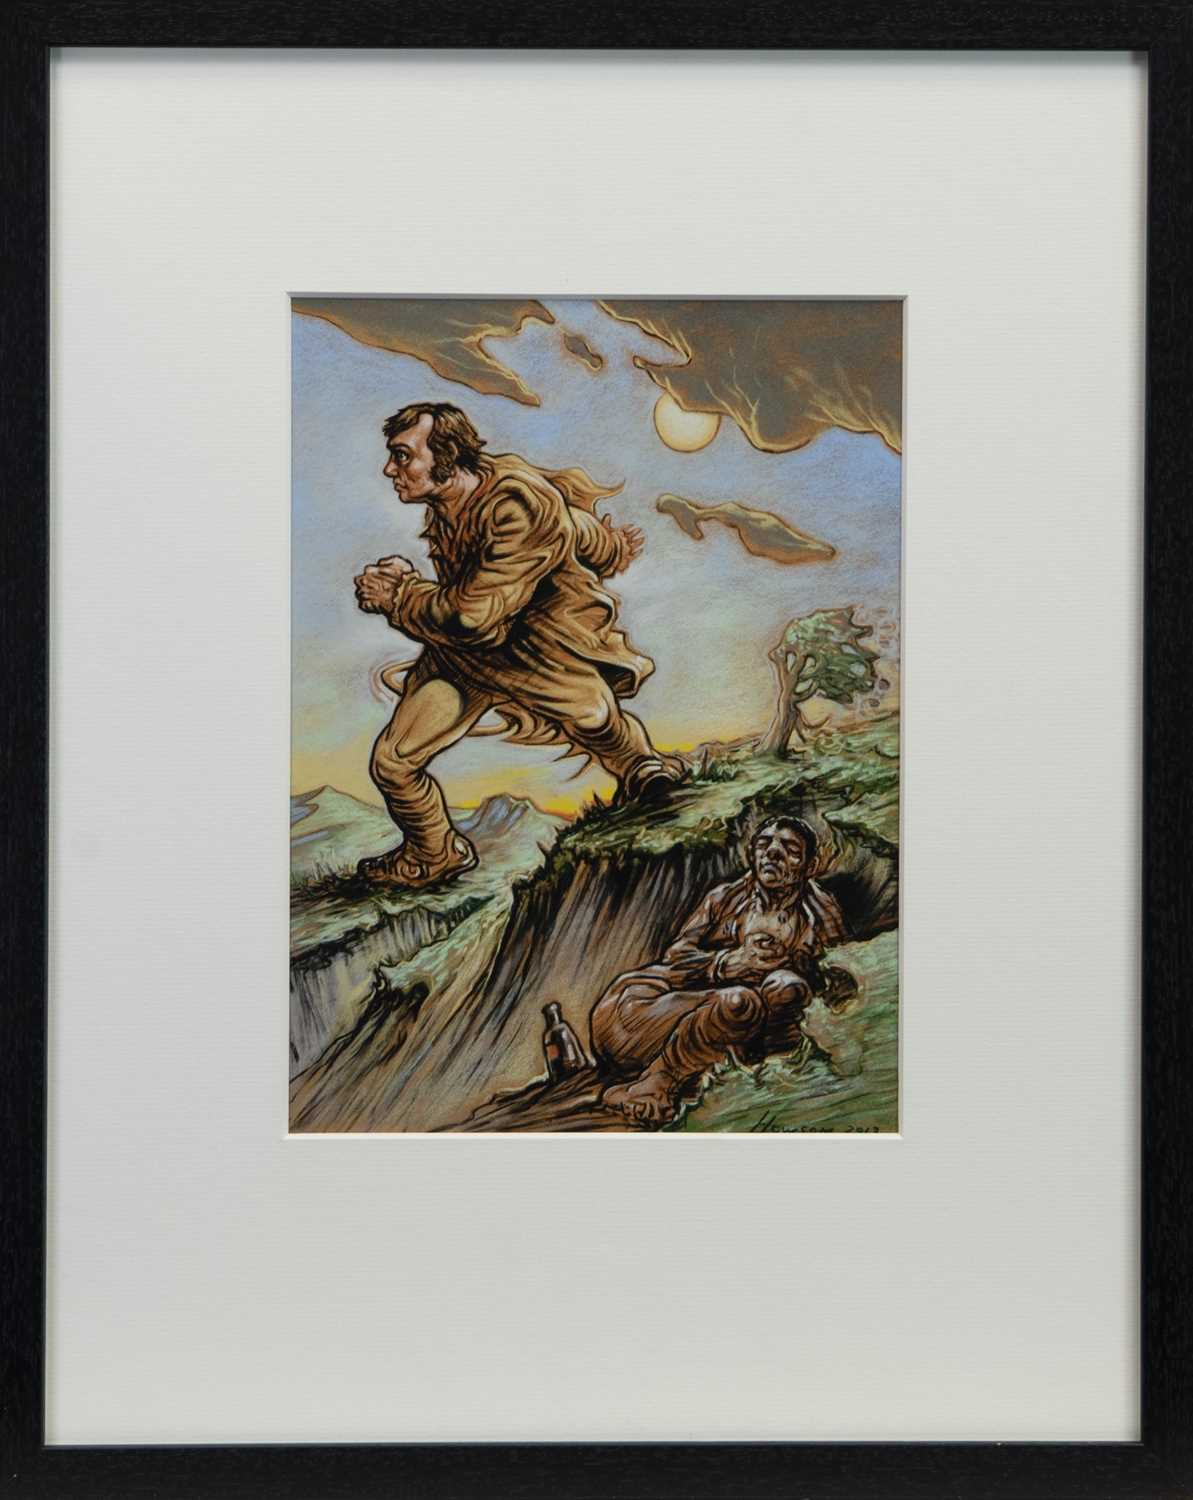 Lot 766 - AN UNTITLED LIMTED EDITION PRINT BY PETER HOWSON